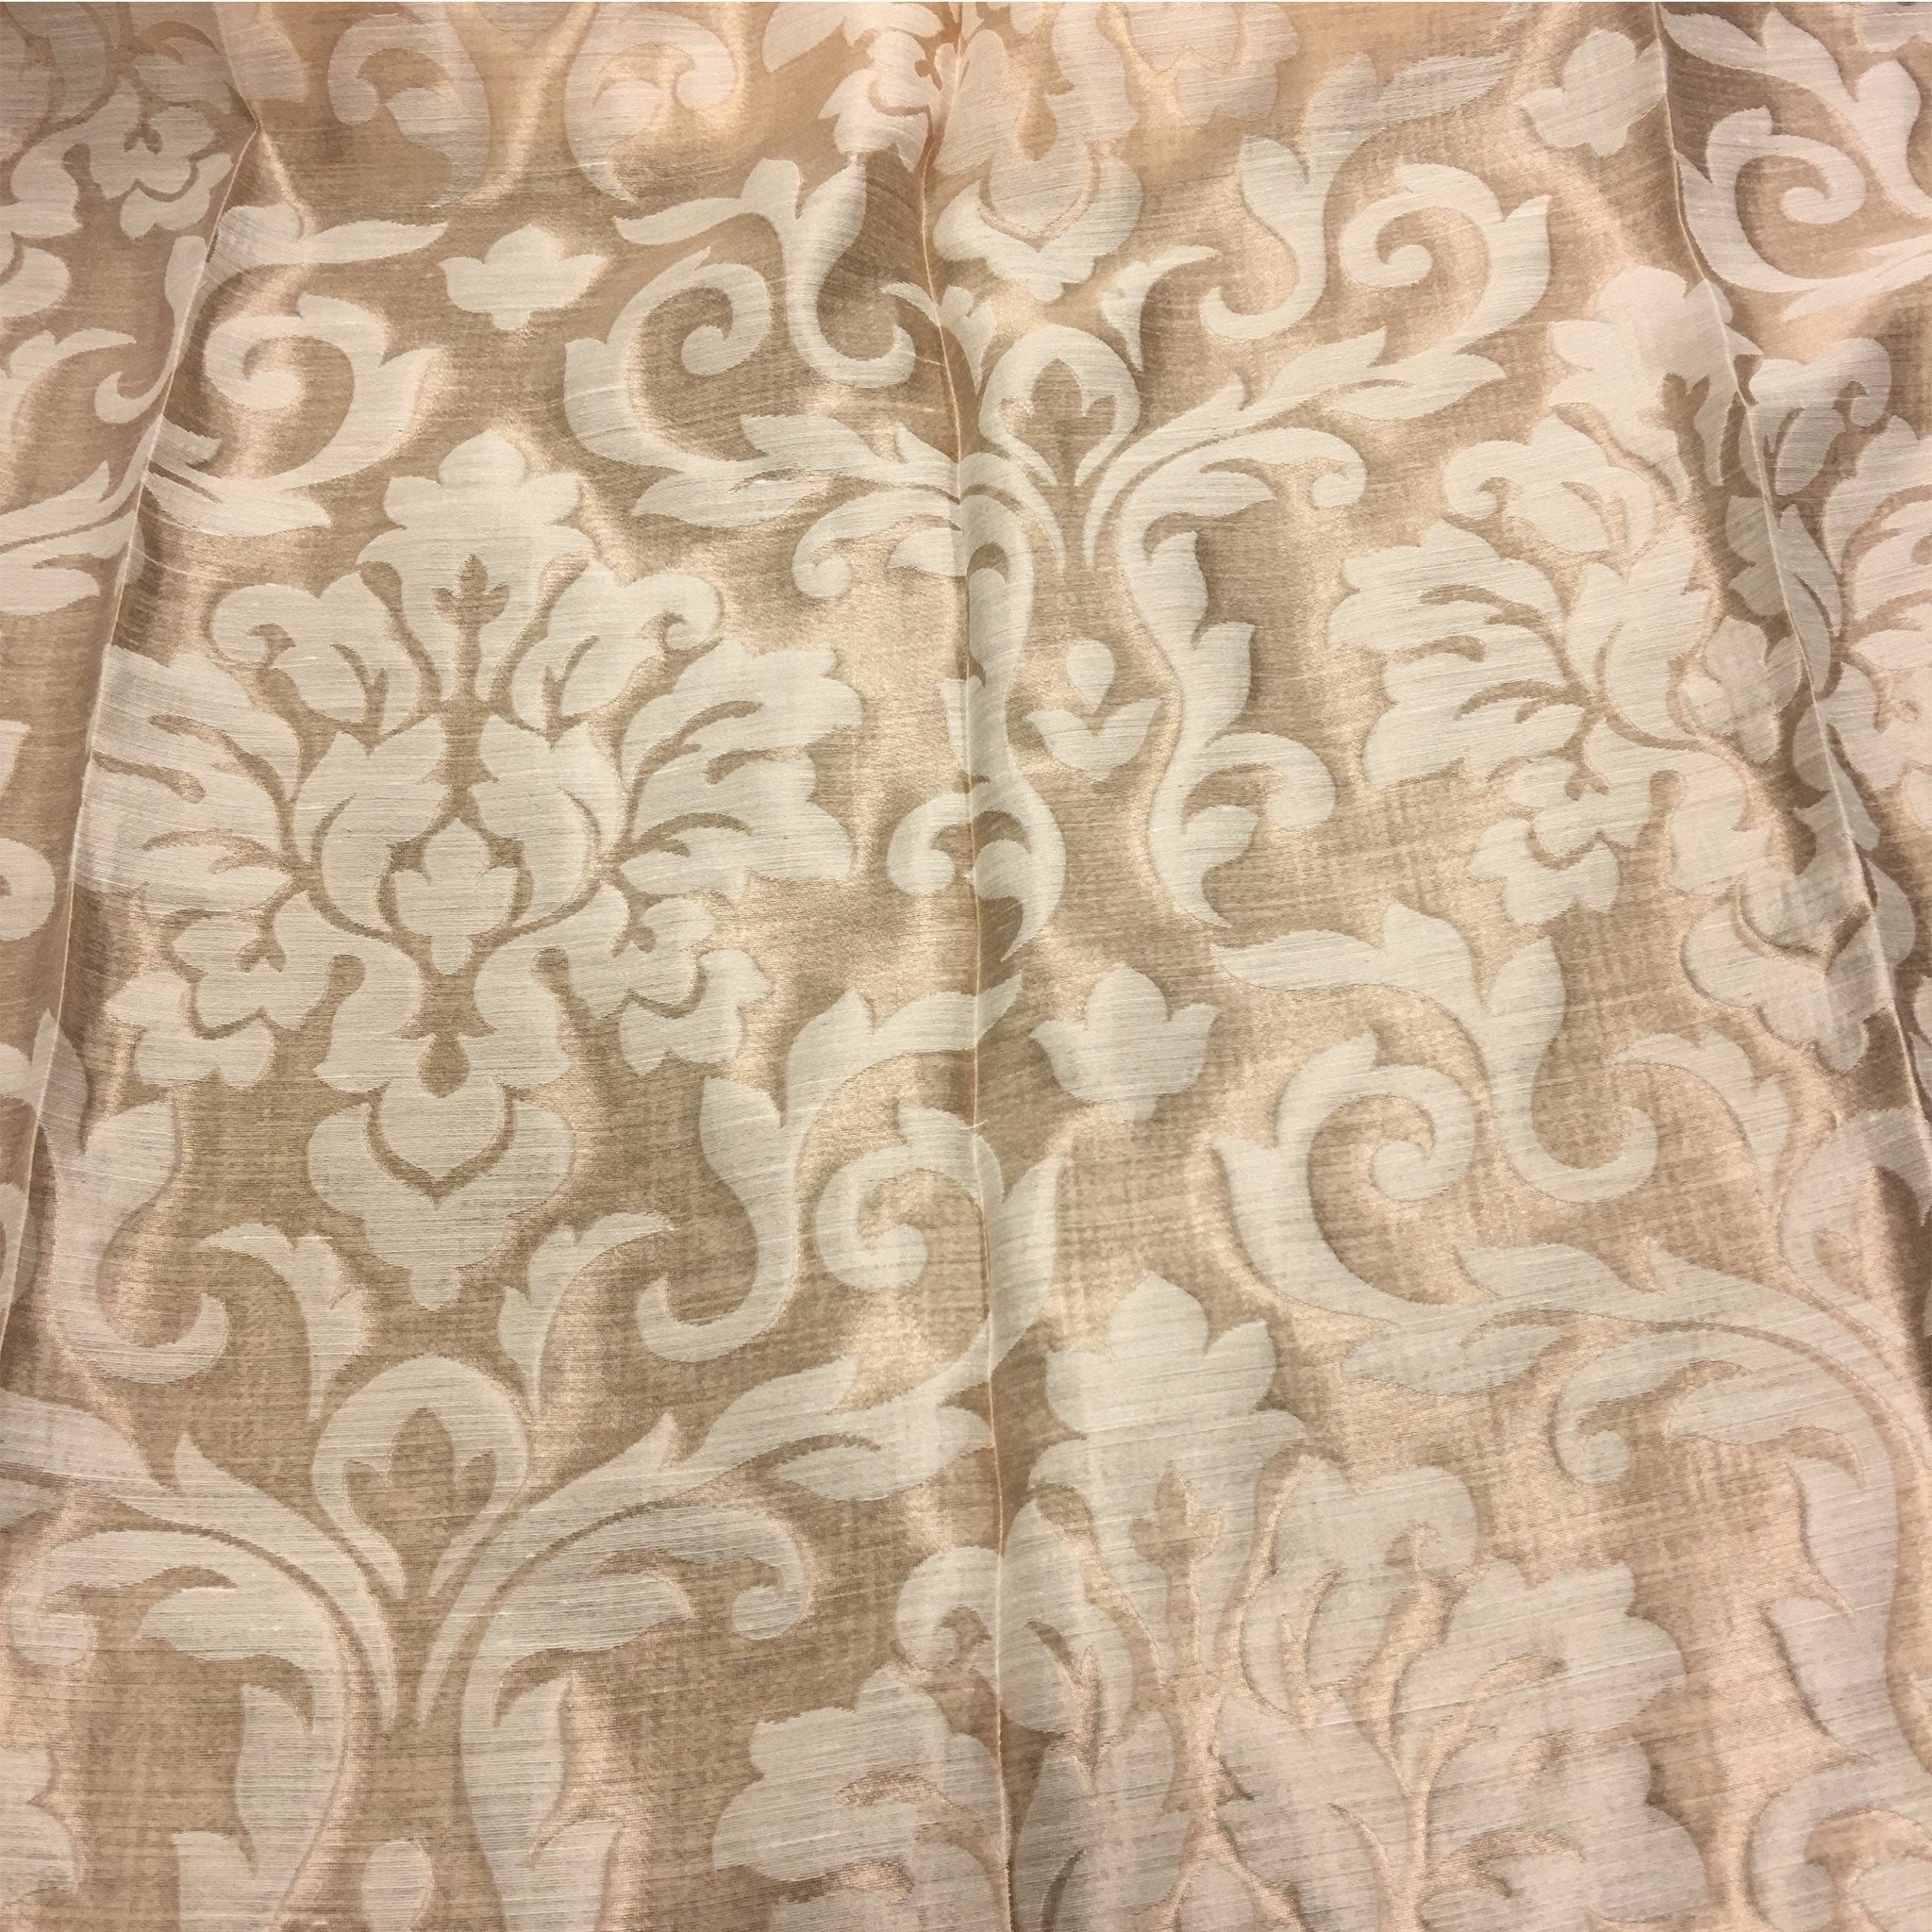 Sullivan 110 Home Decor Window Organza Fabric By The Yard